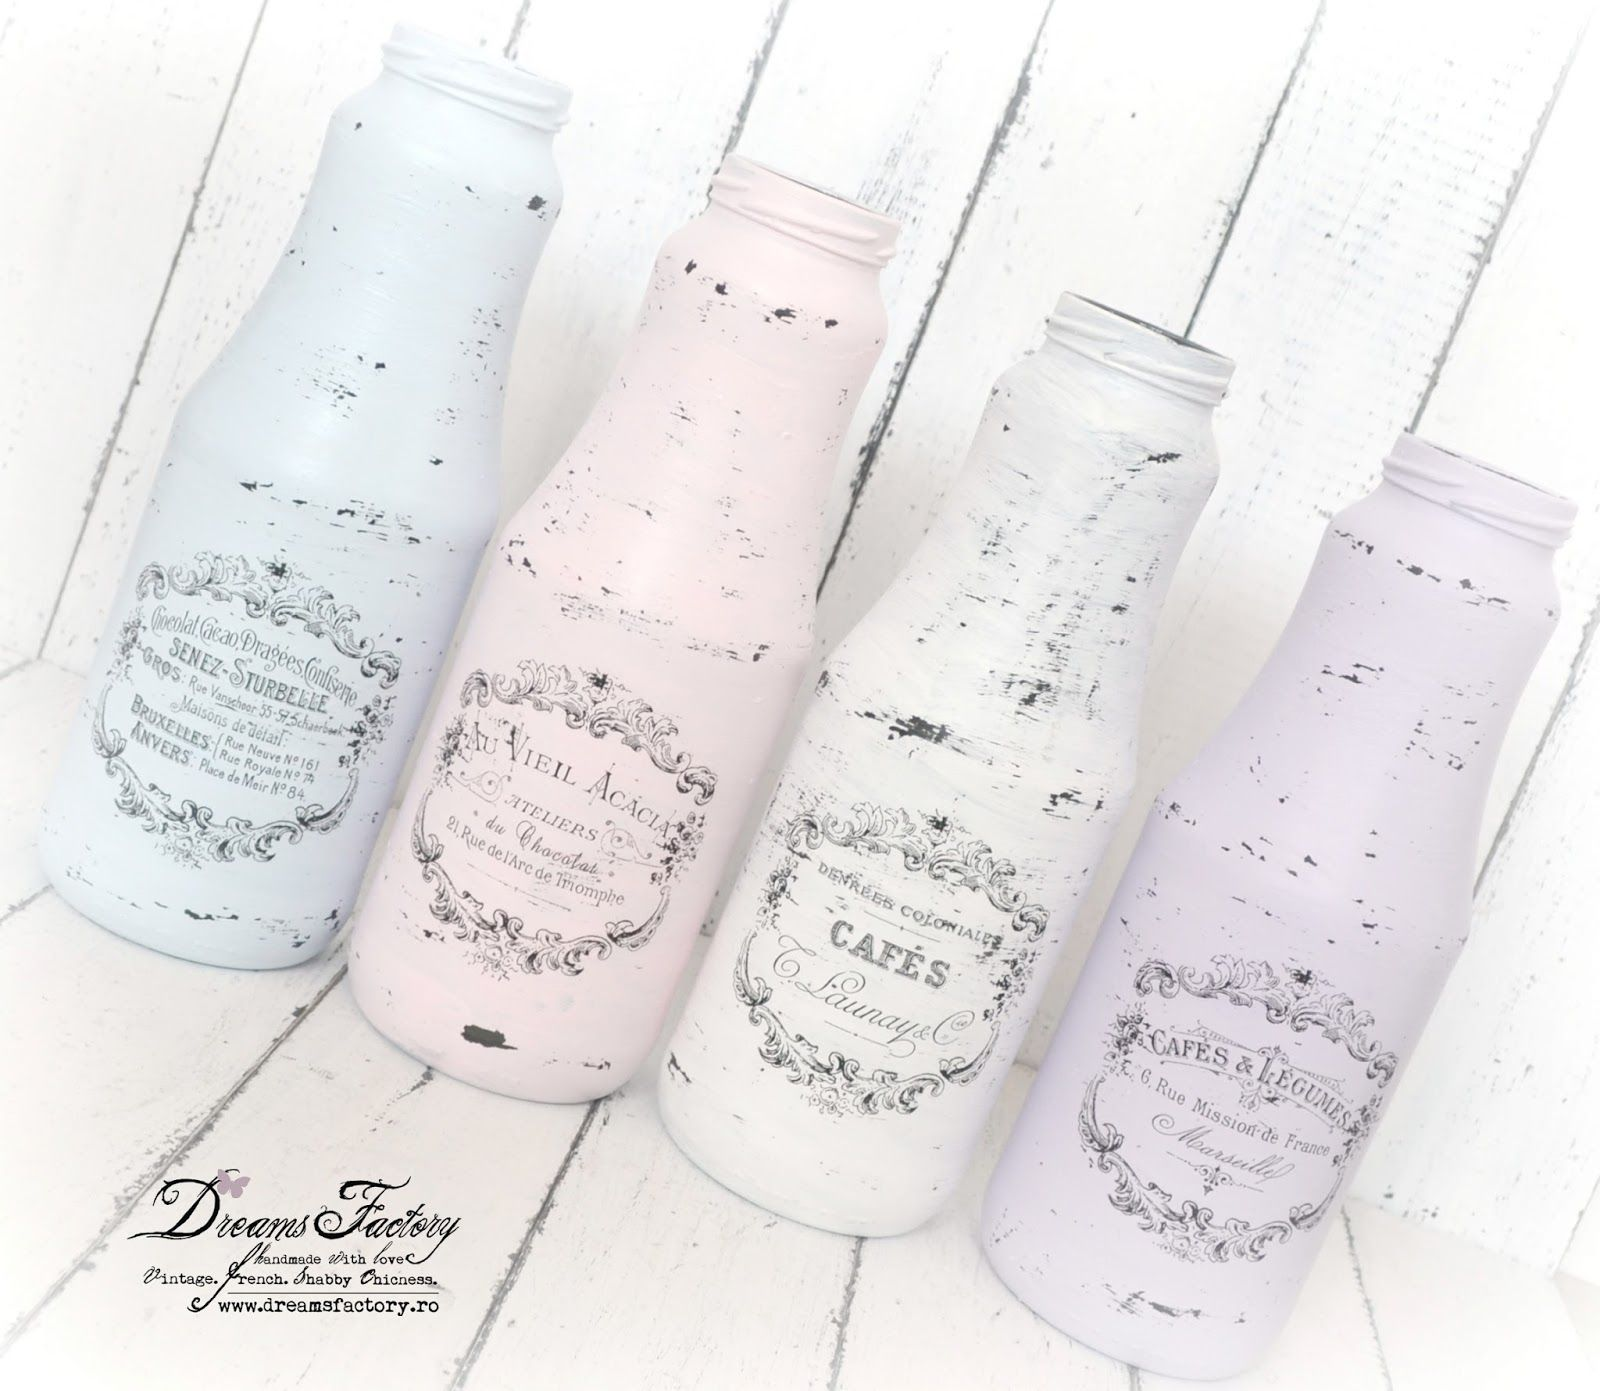 Dreams Factory: Shabby French Caddy & Painted Jars ♦ Ladita Shabby cu maner si borcane pictate